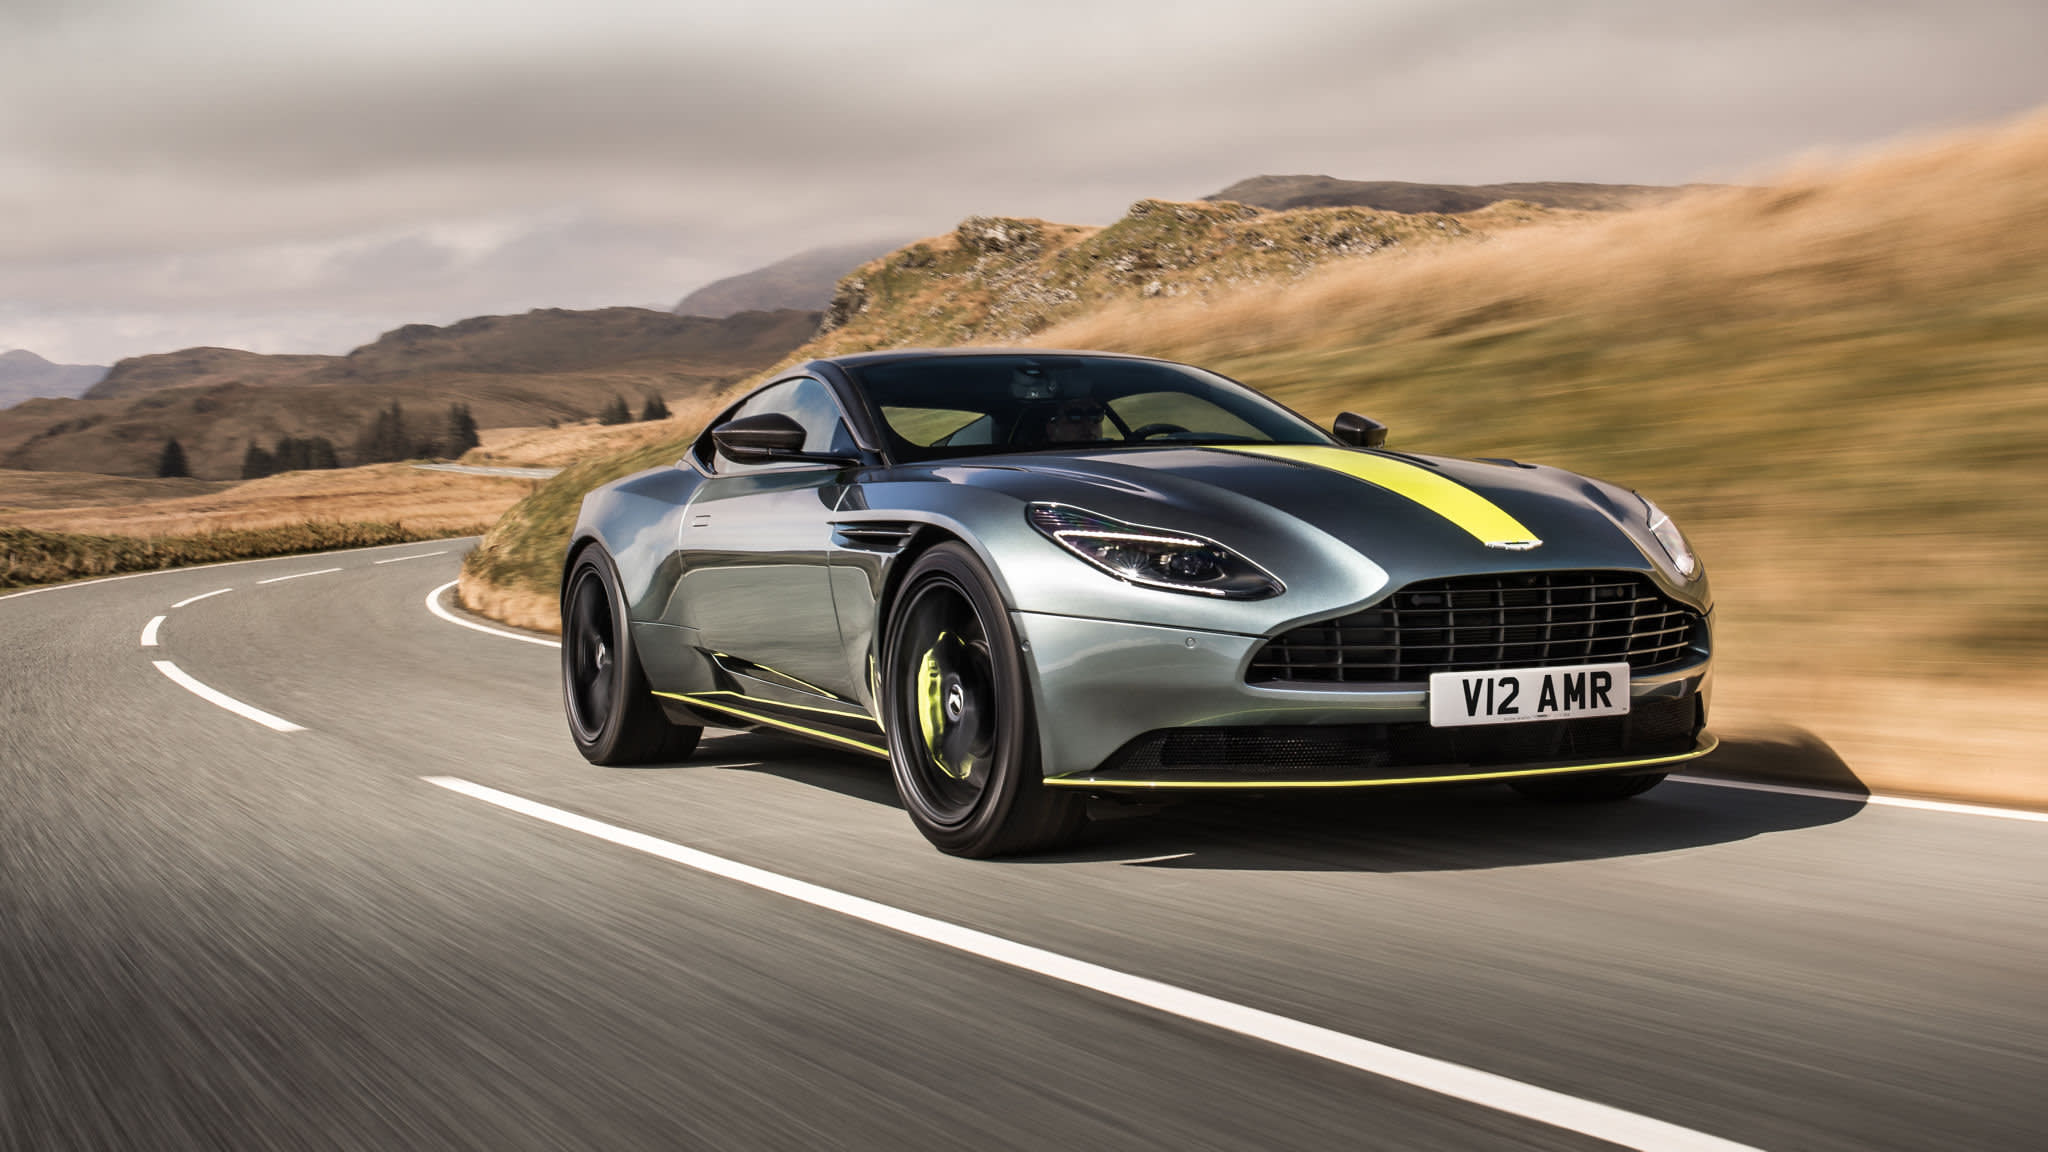 aston martin finds goldfinger can have the reverse midas touch